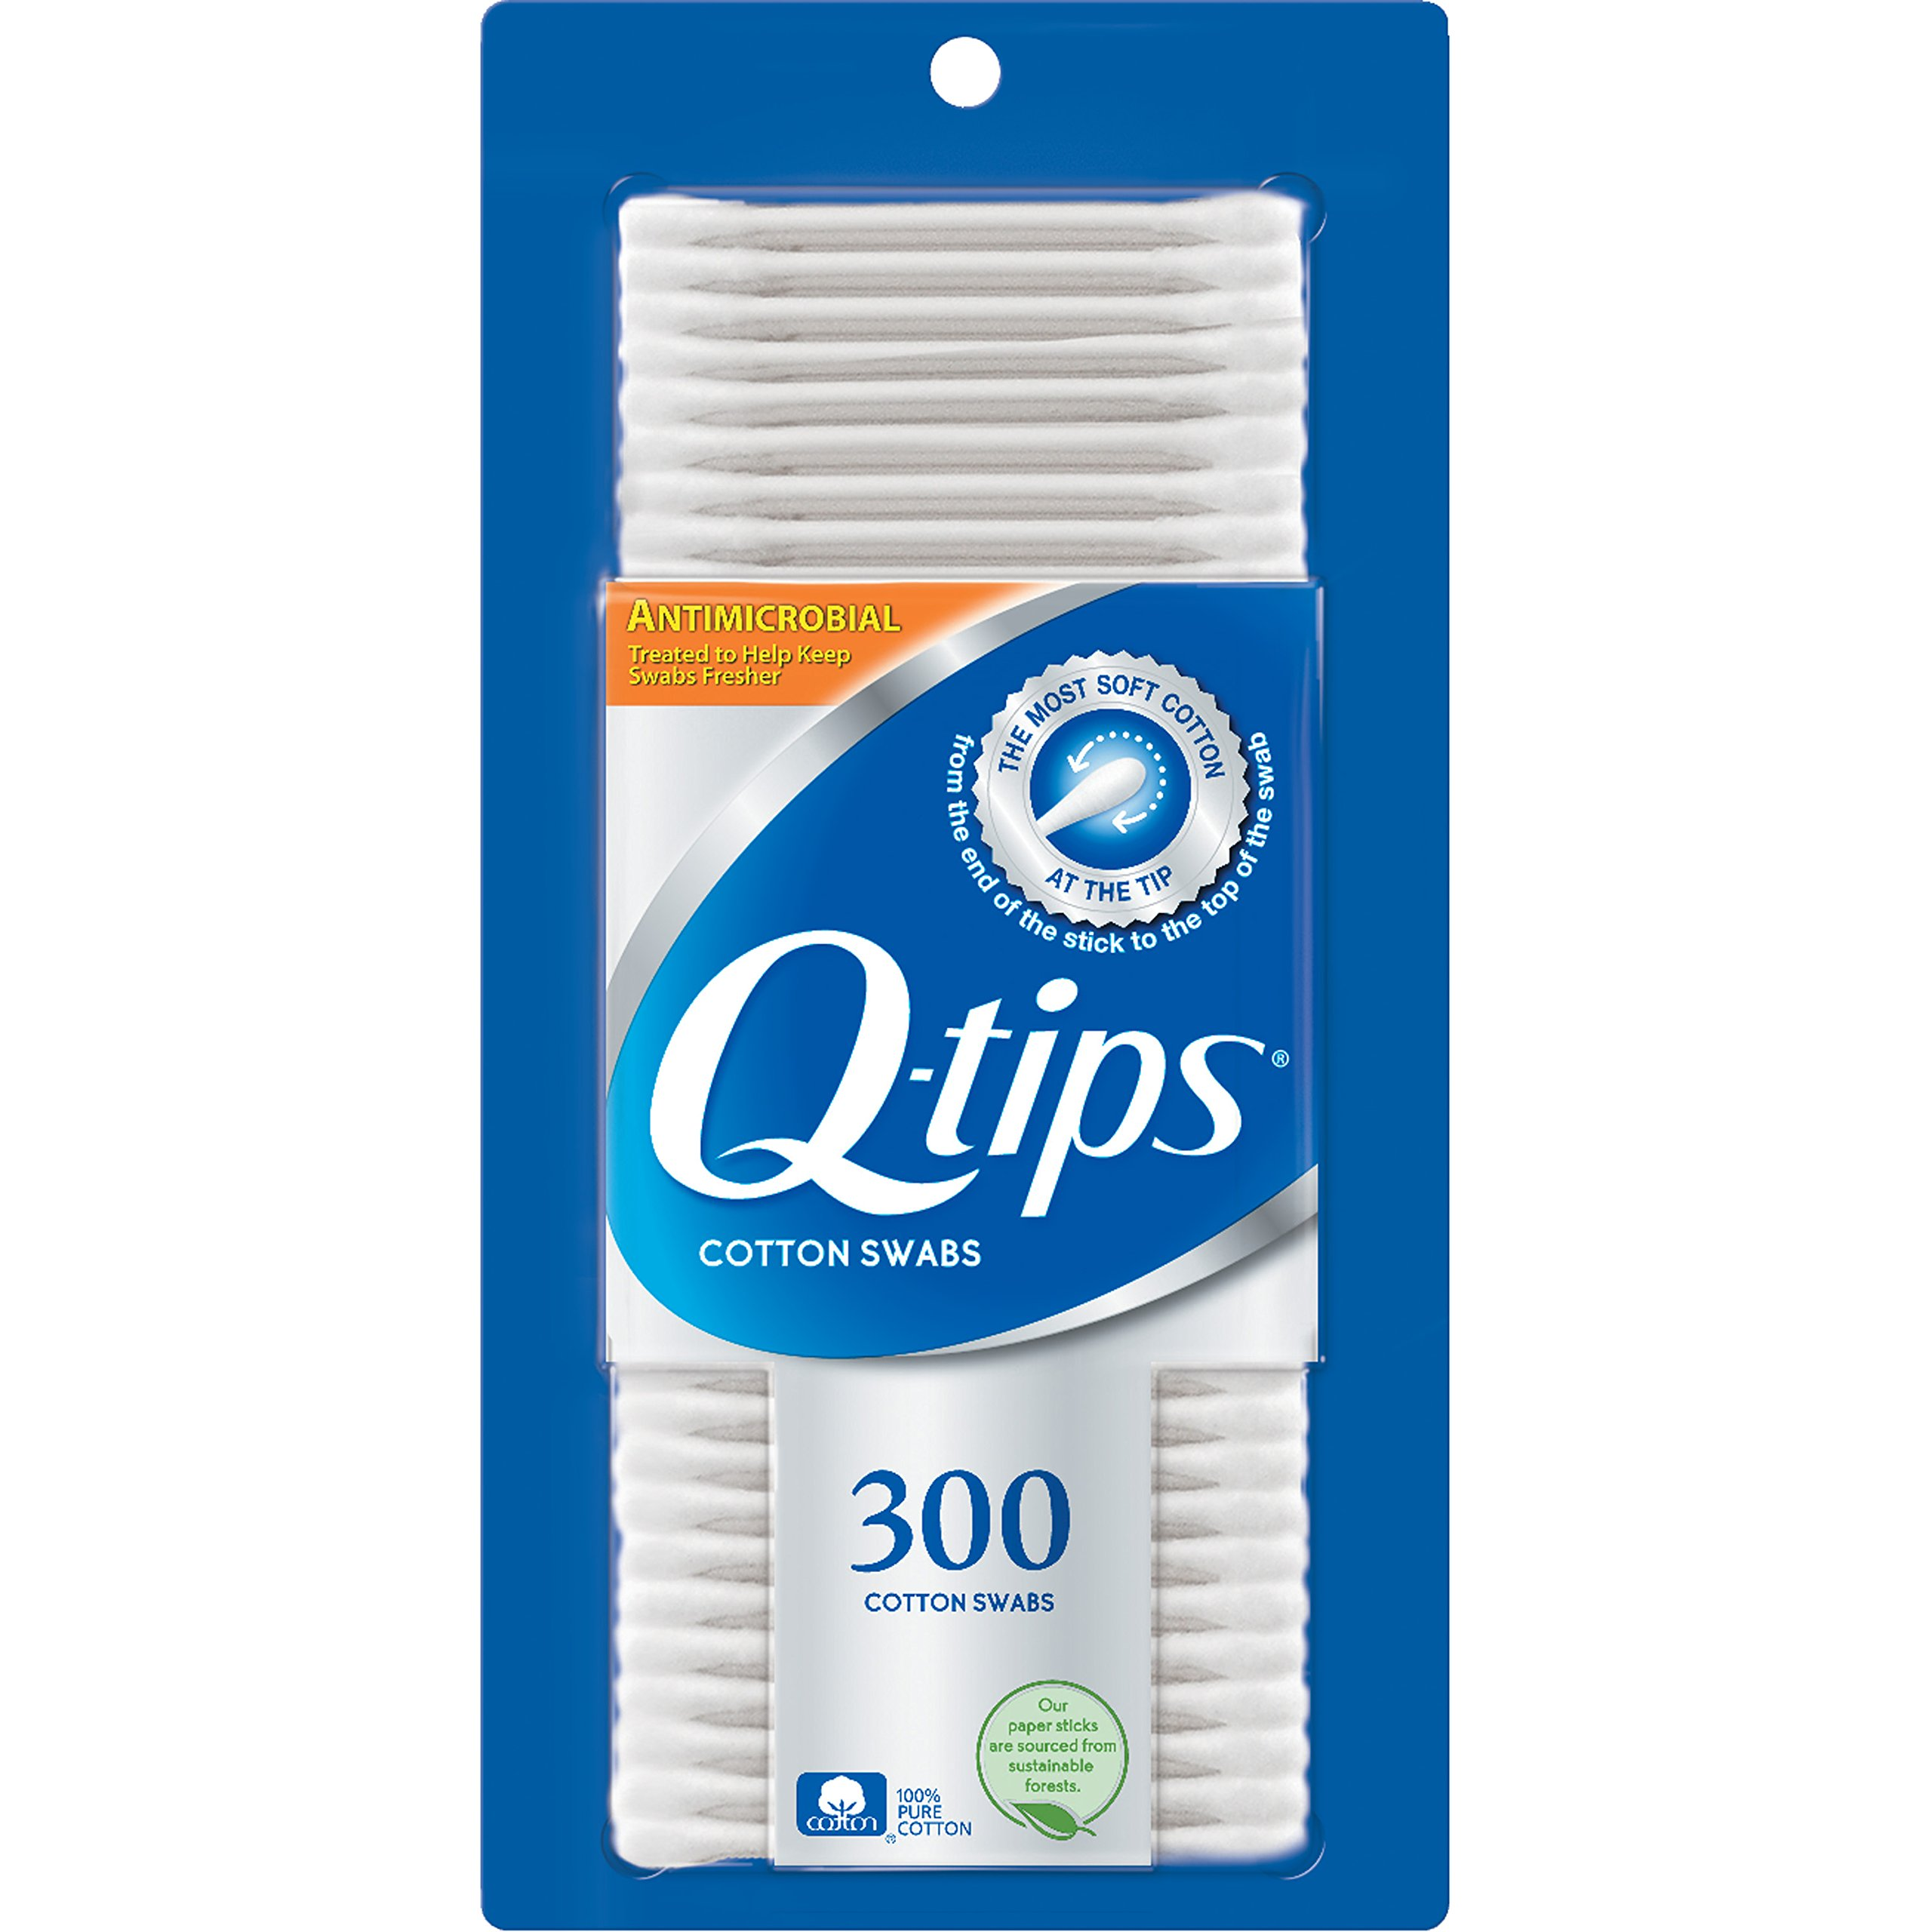 Q-tips Cotton Swabs, Anti-Bacterial, 300 ct (Pack of 8)